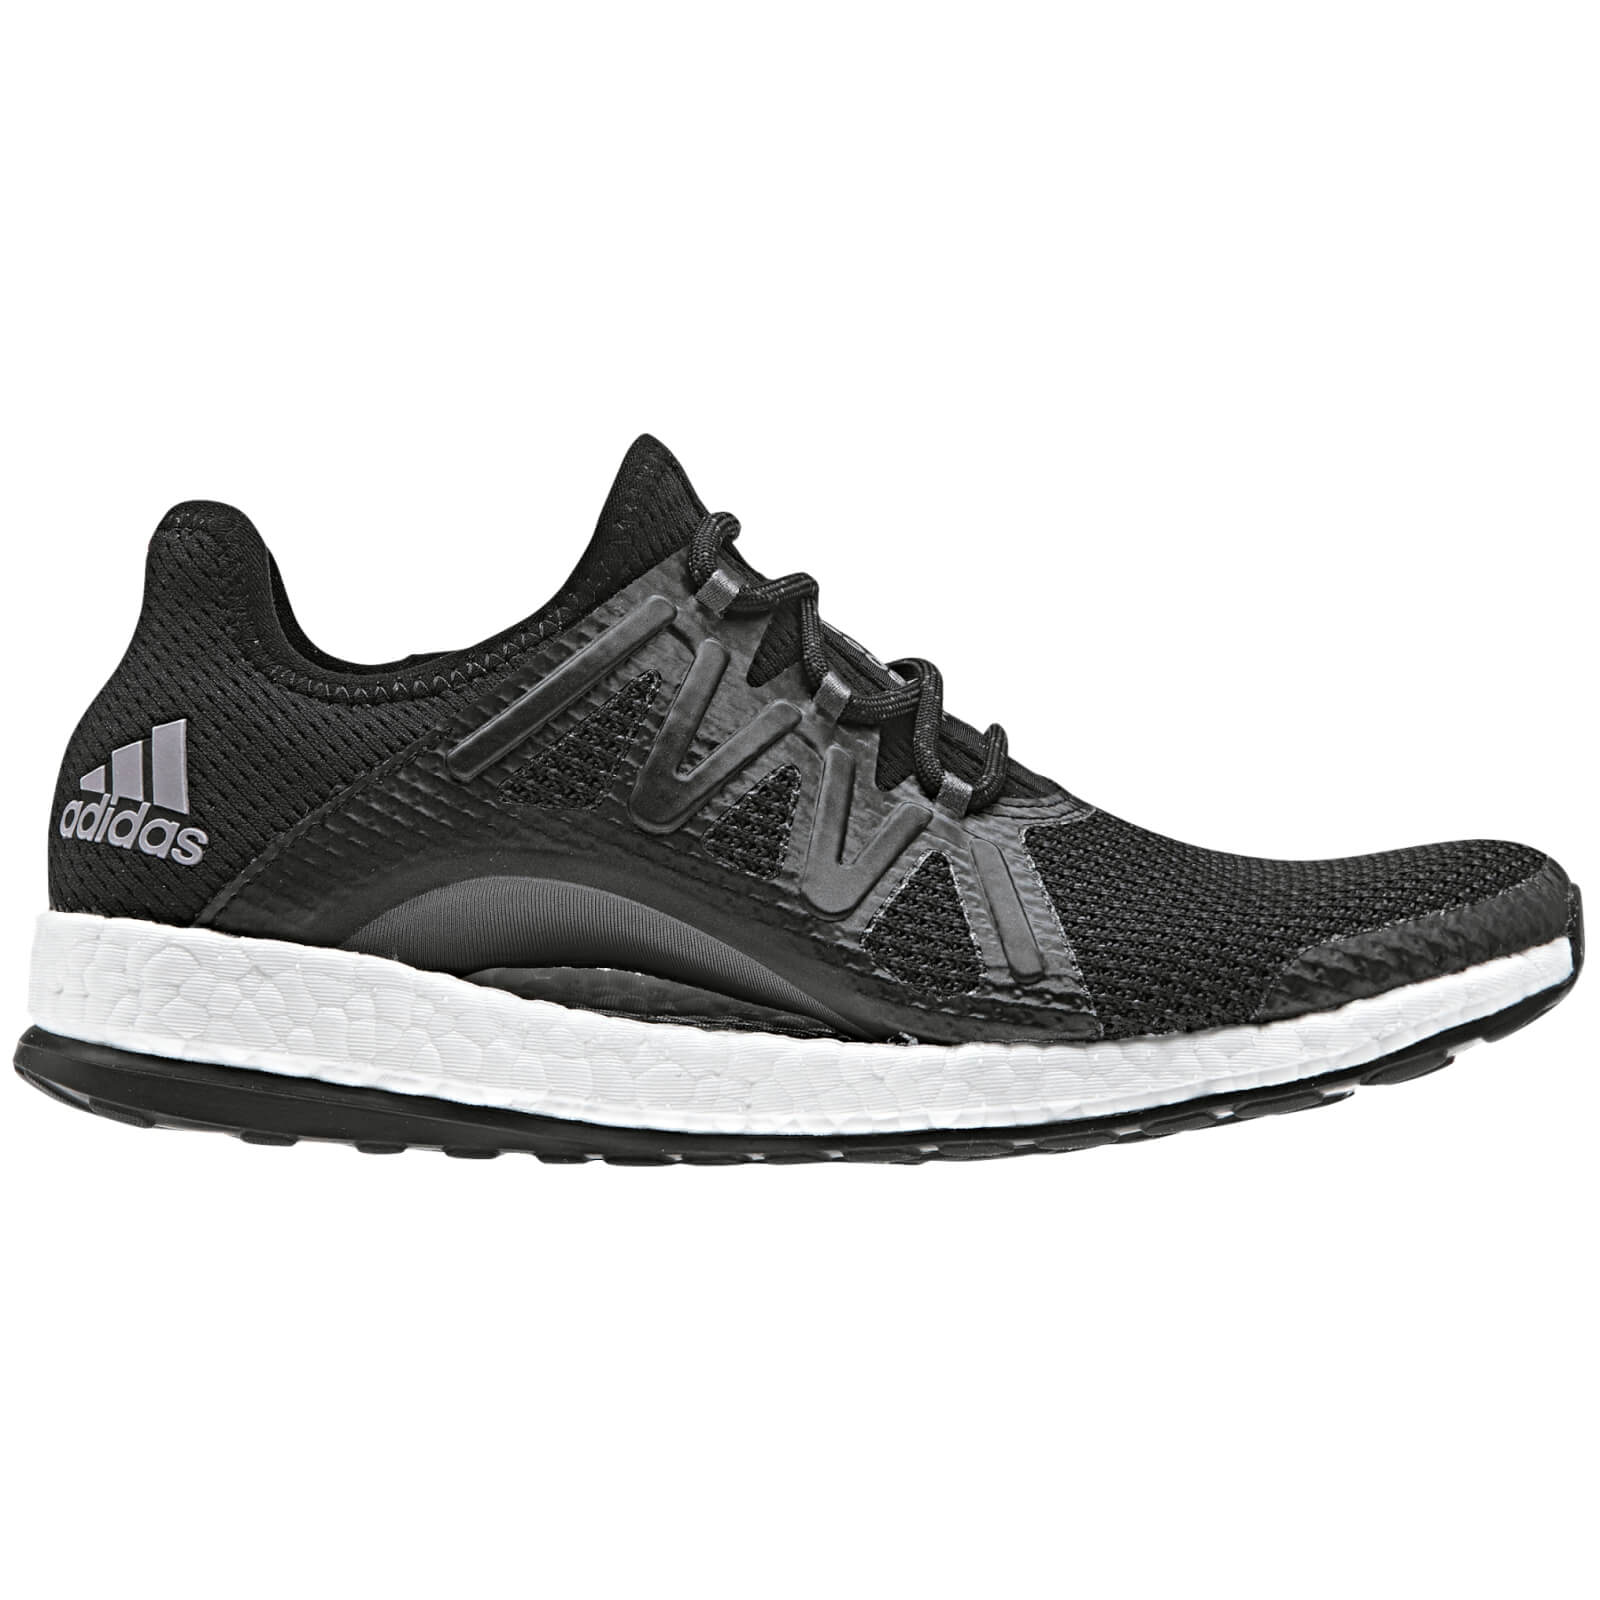 c7eeb88f1 adidas Women s Pure Boost Xpose Running Shoes - Black